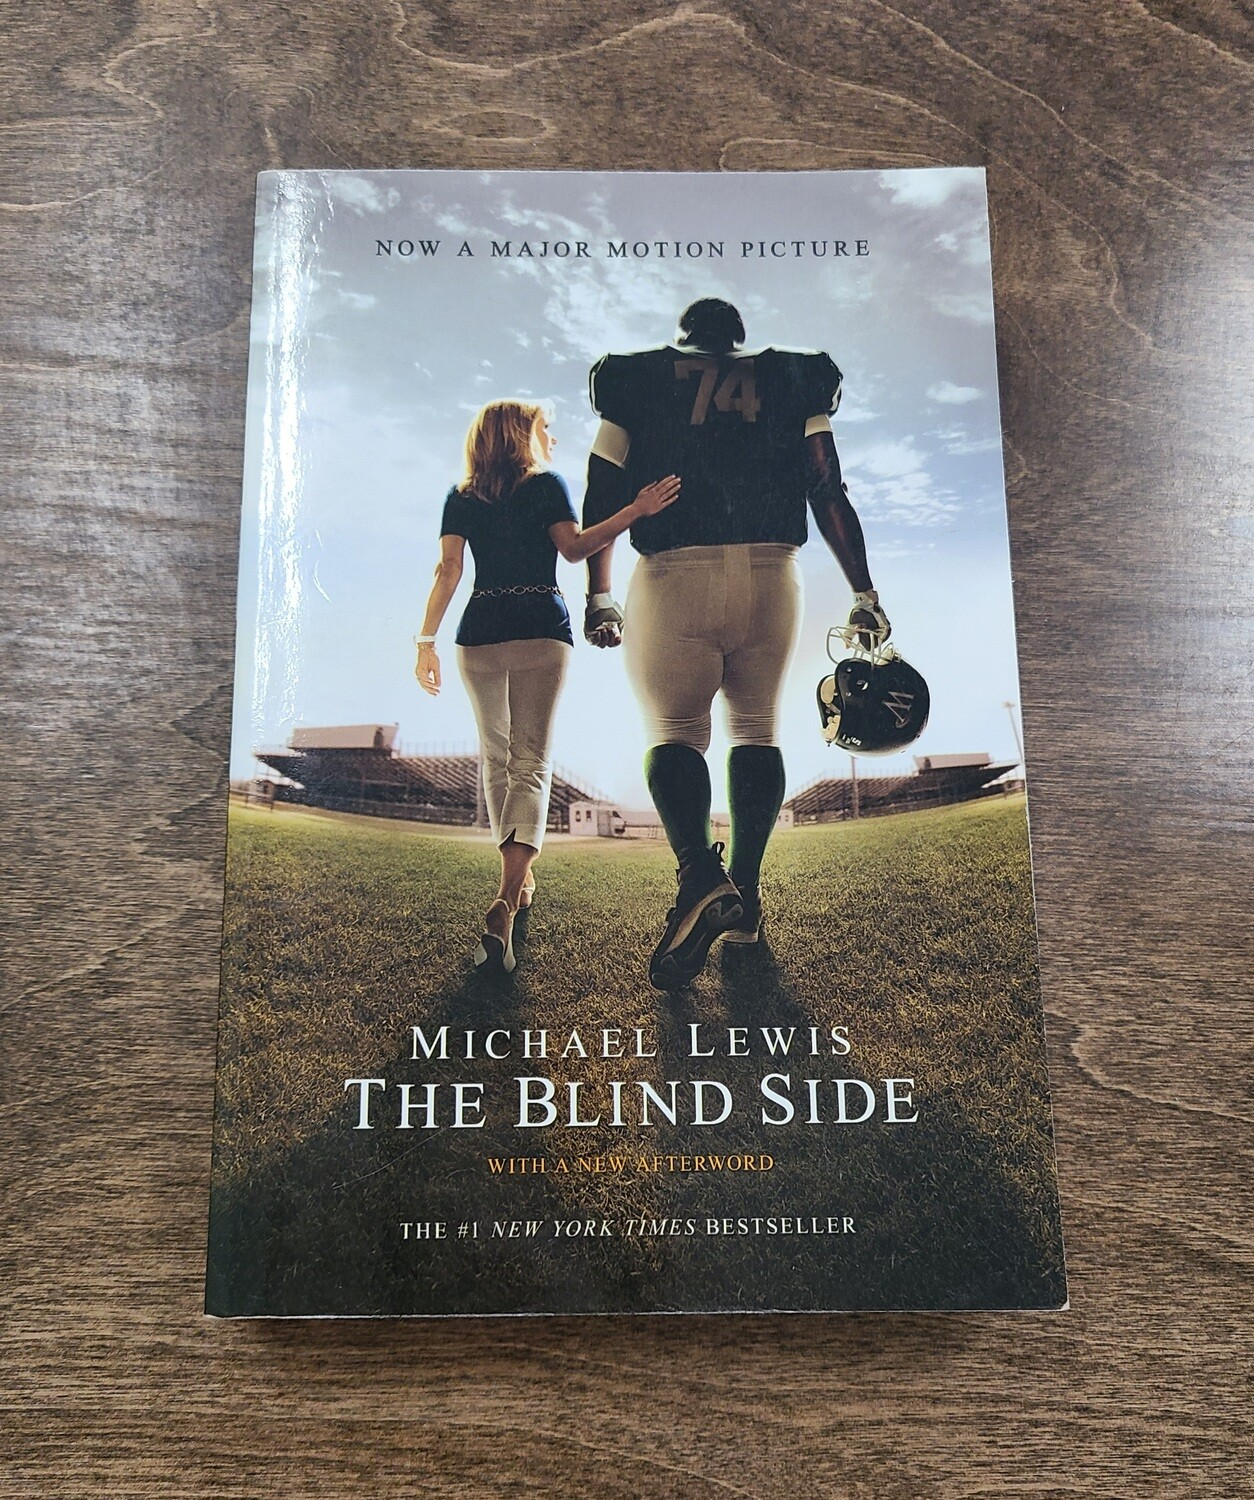 The Blind Side by Michael Lewis